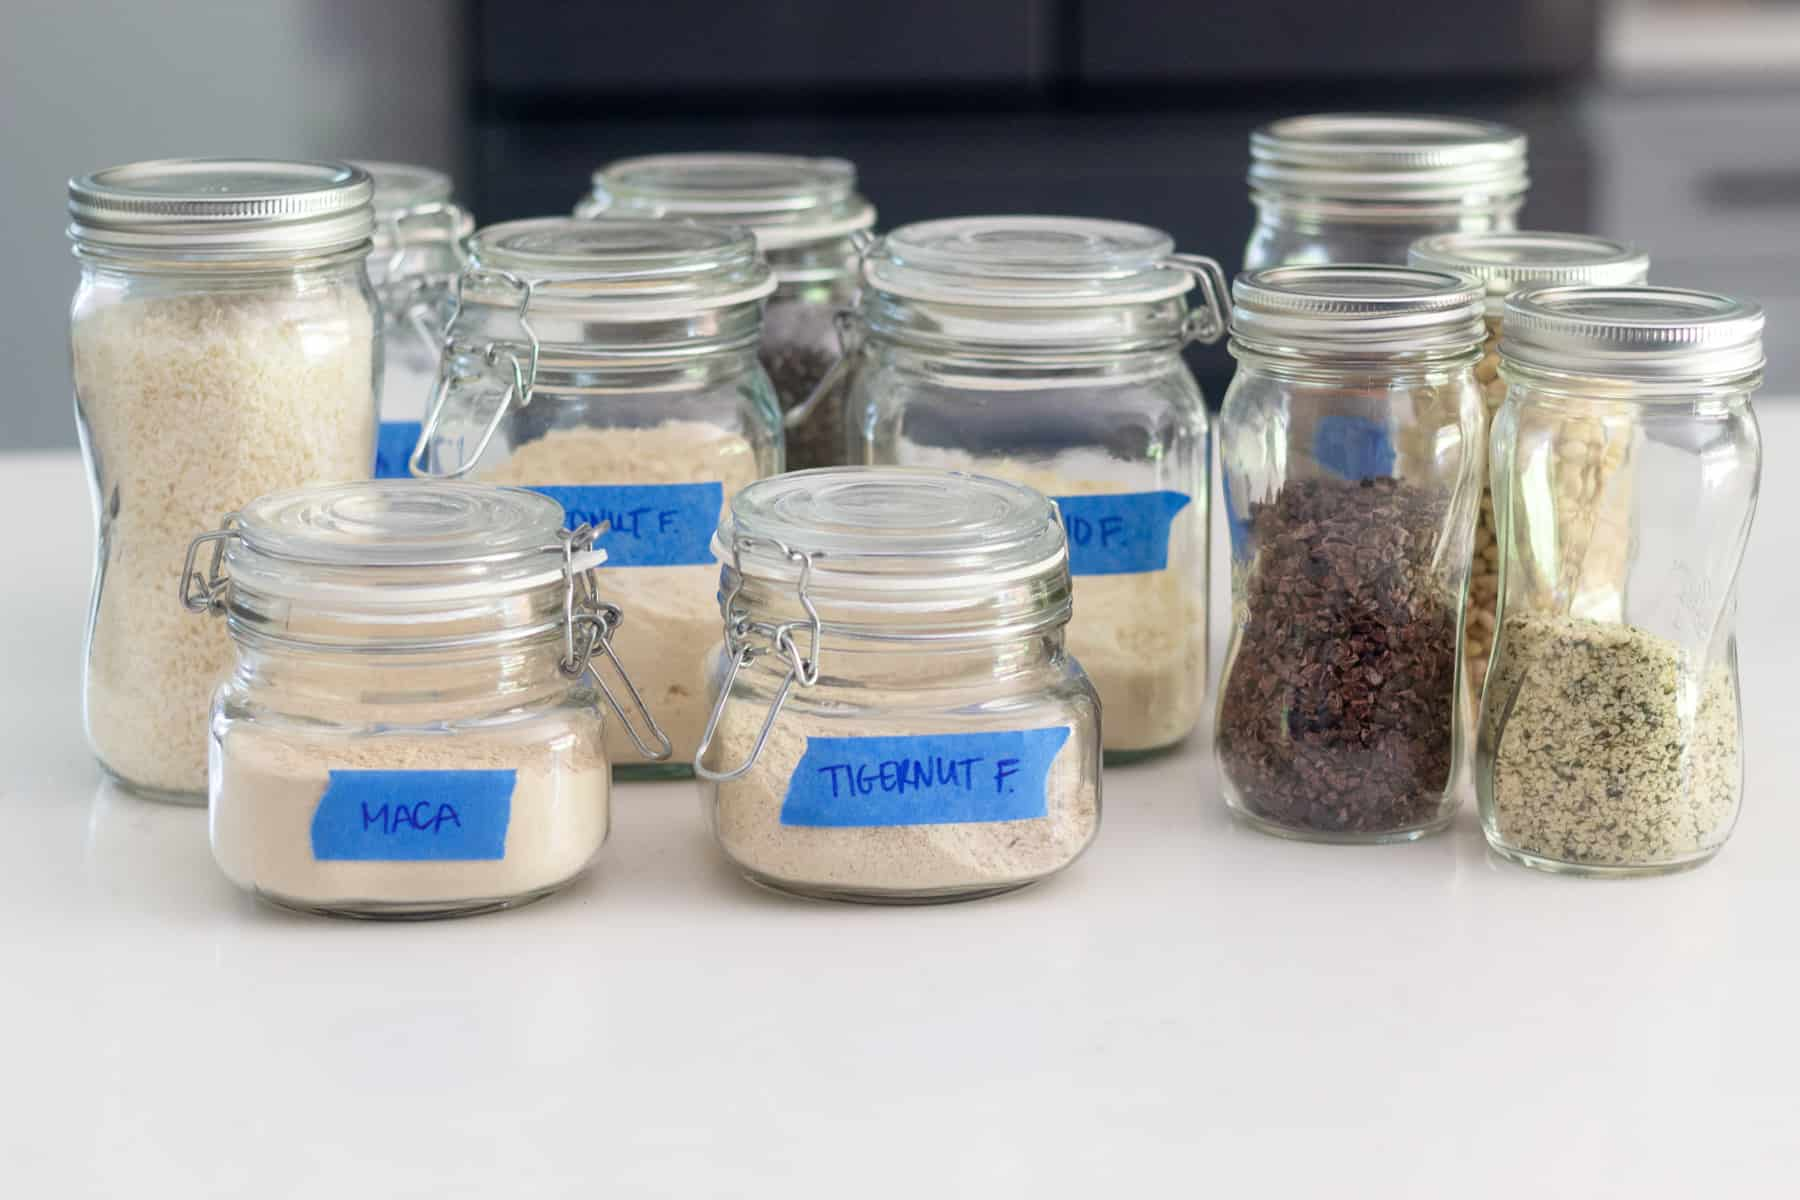 A bunch of glass jars with different flours and pantry staples in them